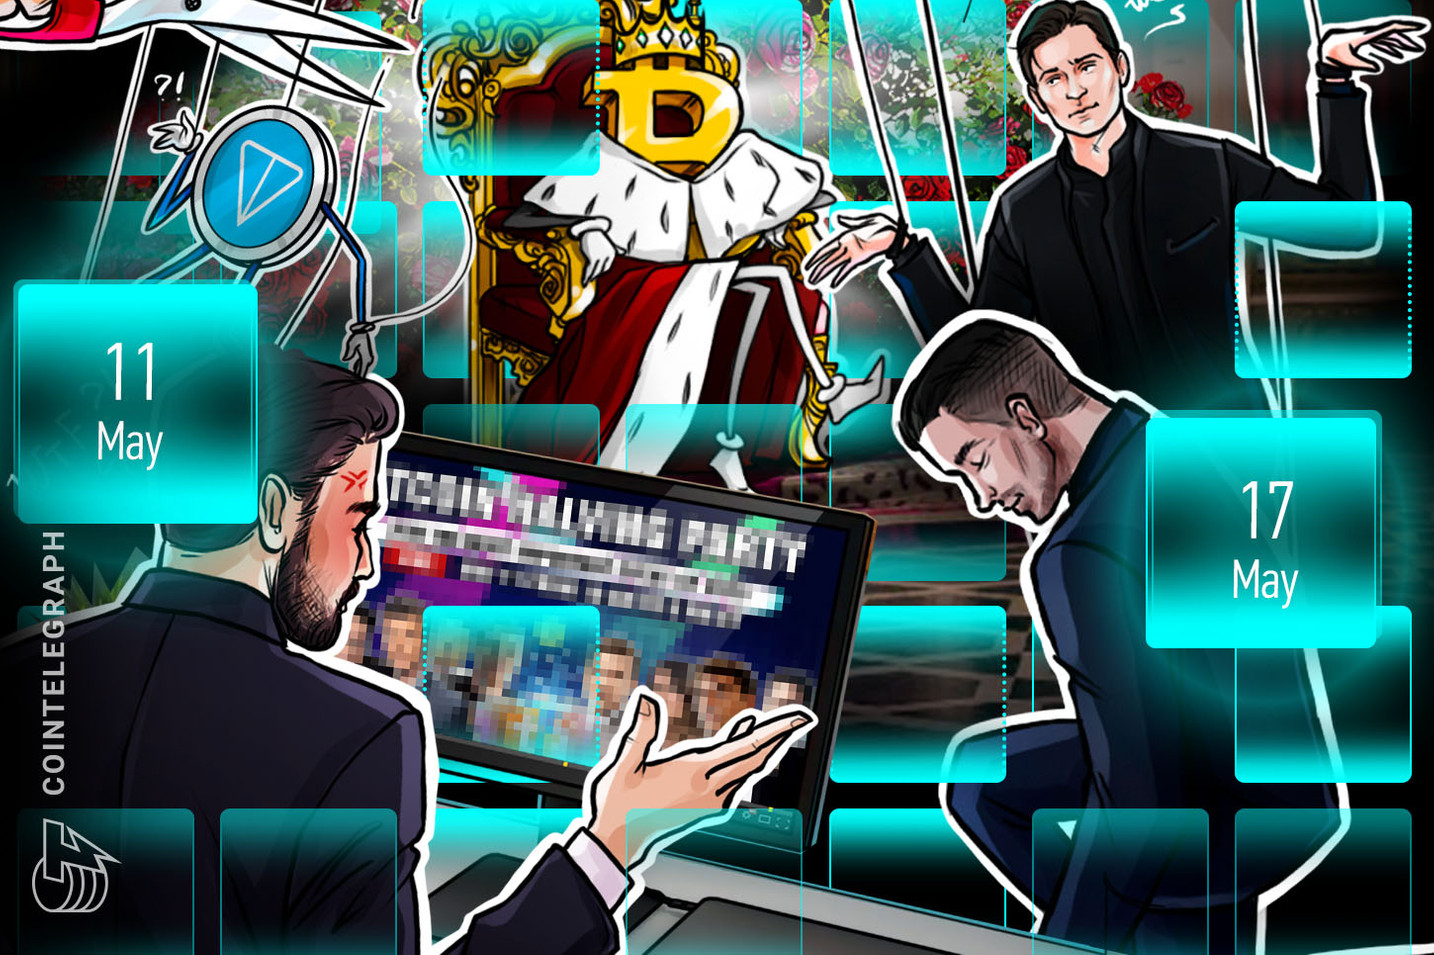 Bitcoin Breakout Hopes, R.I.P. TON, Trump Threatened: Hodler's Digest, May 11–17